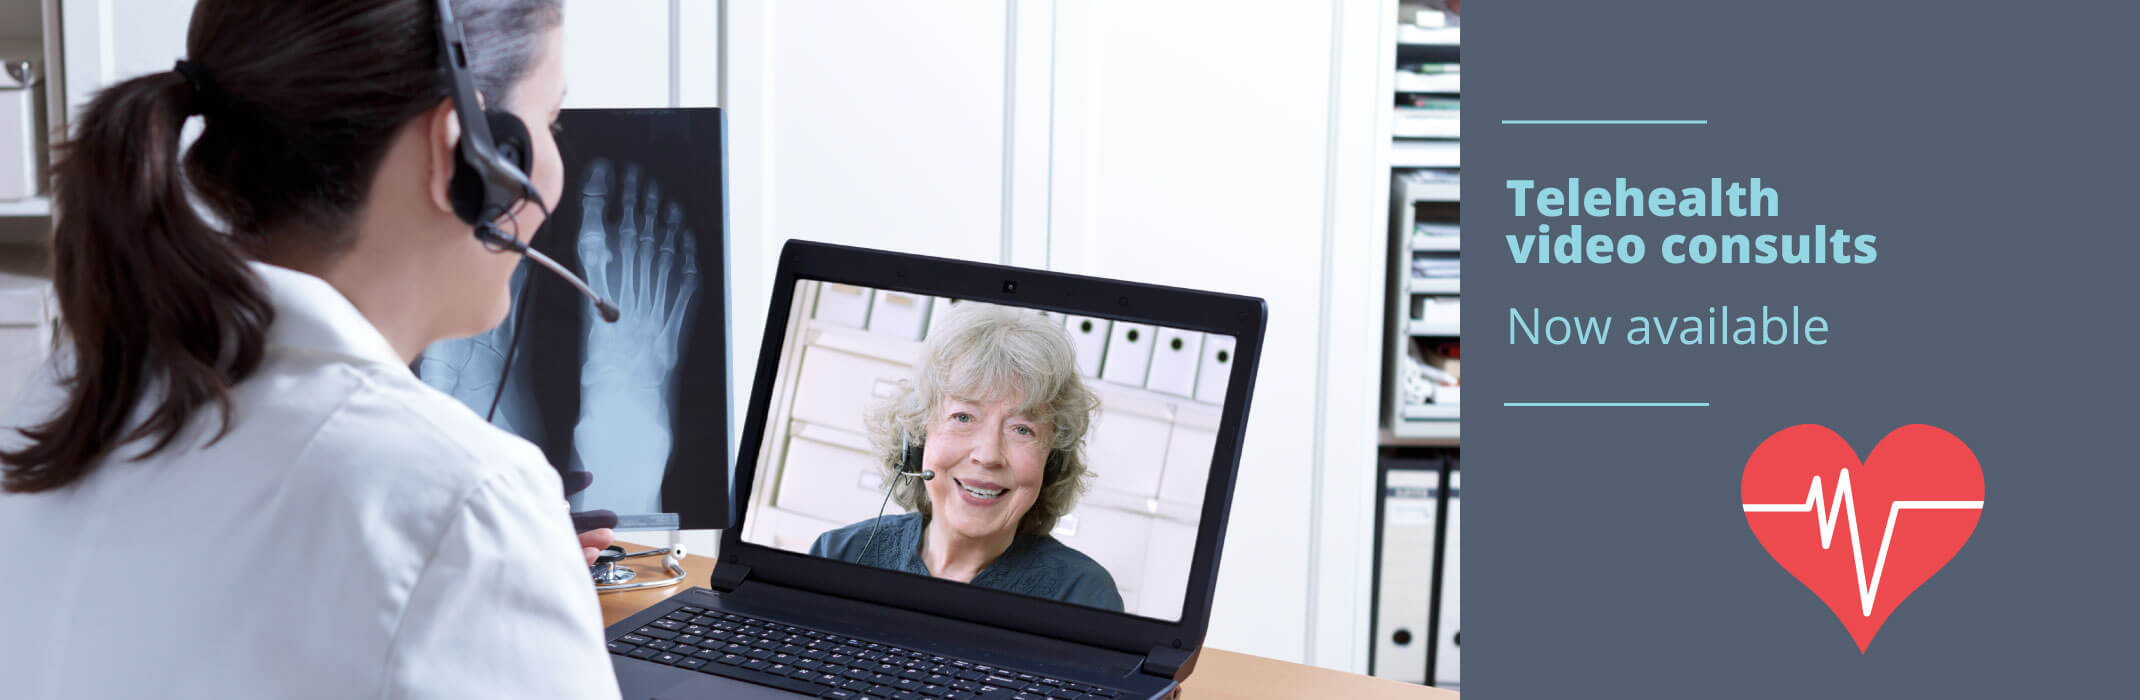 Telehealth video calls now available